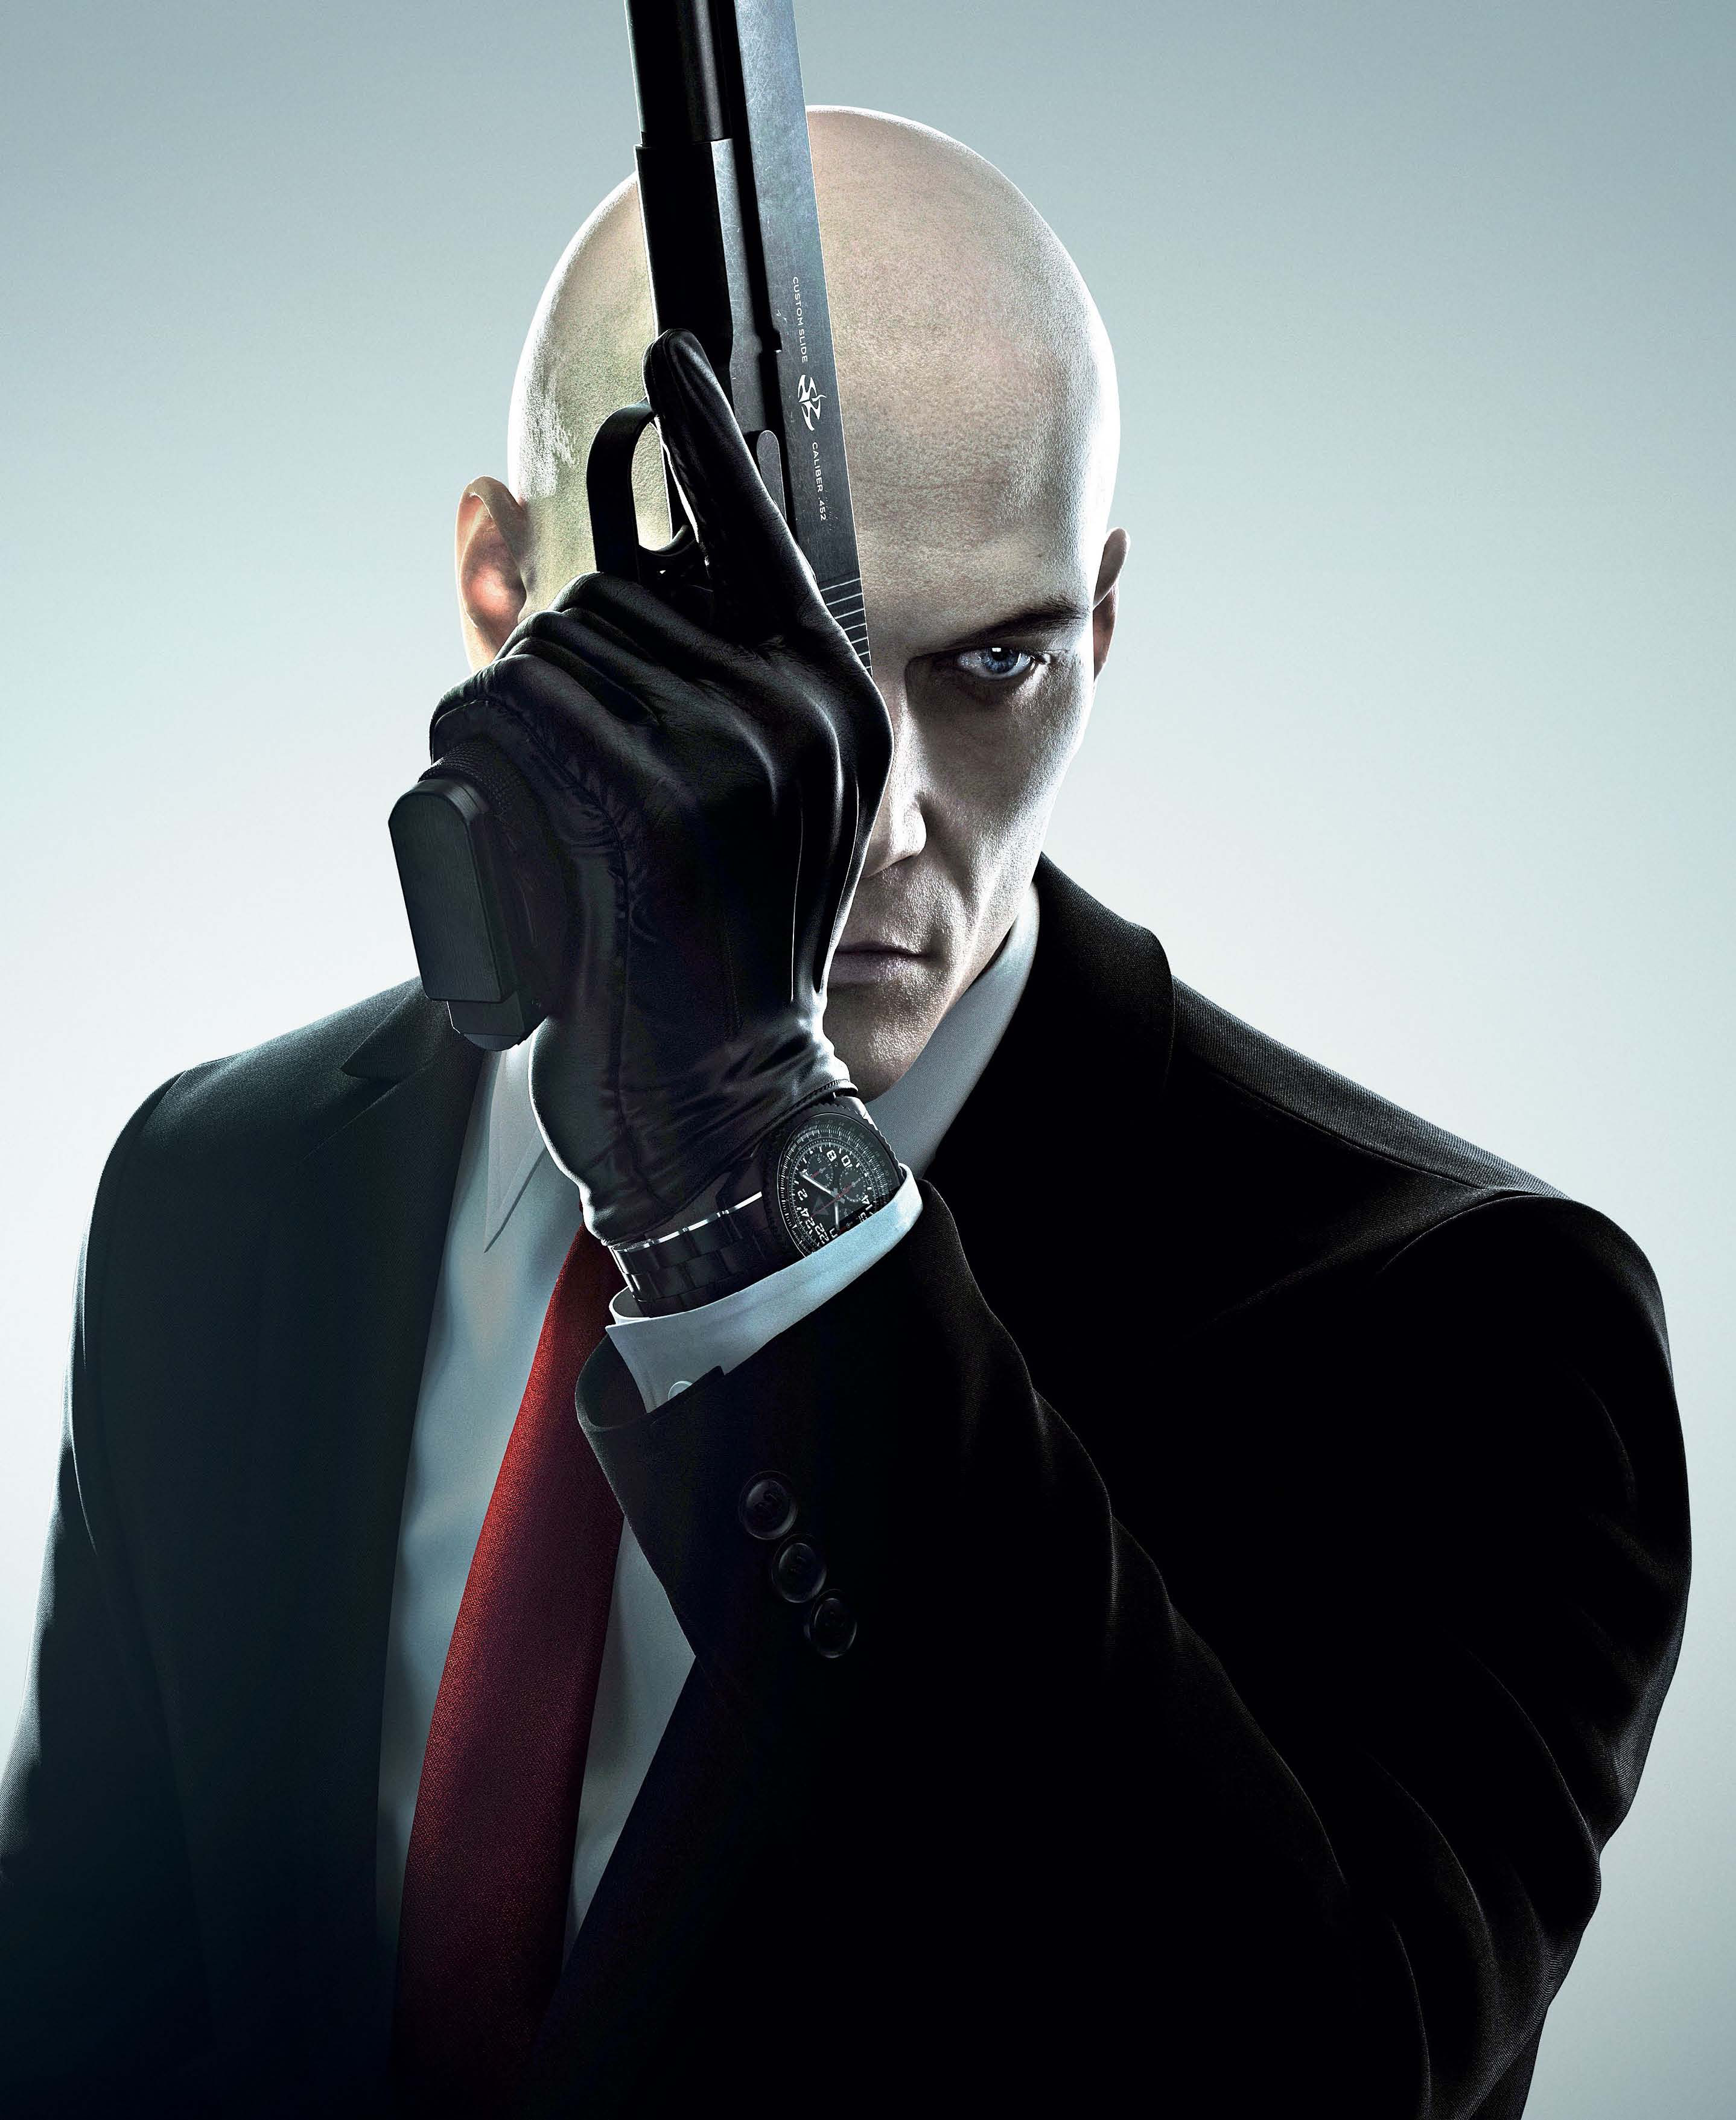 Hitman 2016 Wallpapers Video Game Hq Hitman 2016 Pictures 4k Wallpapers 2019